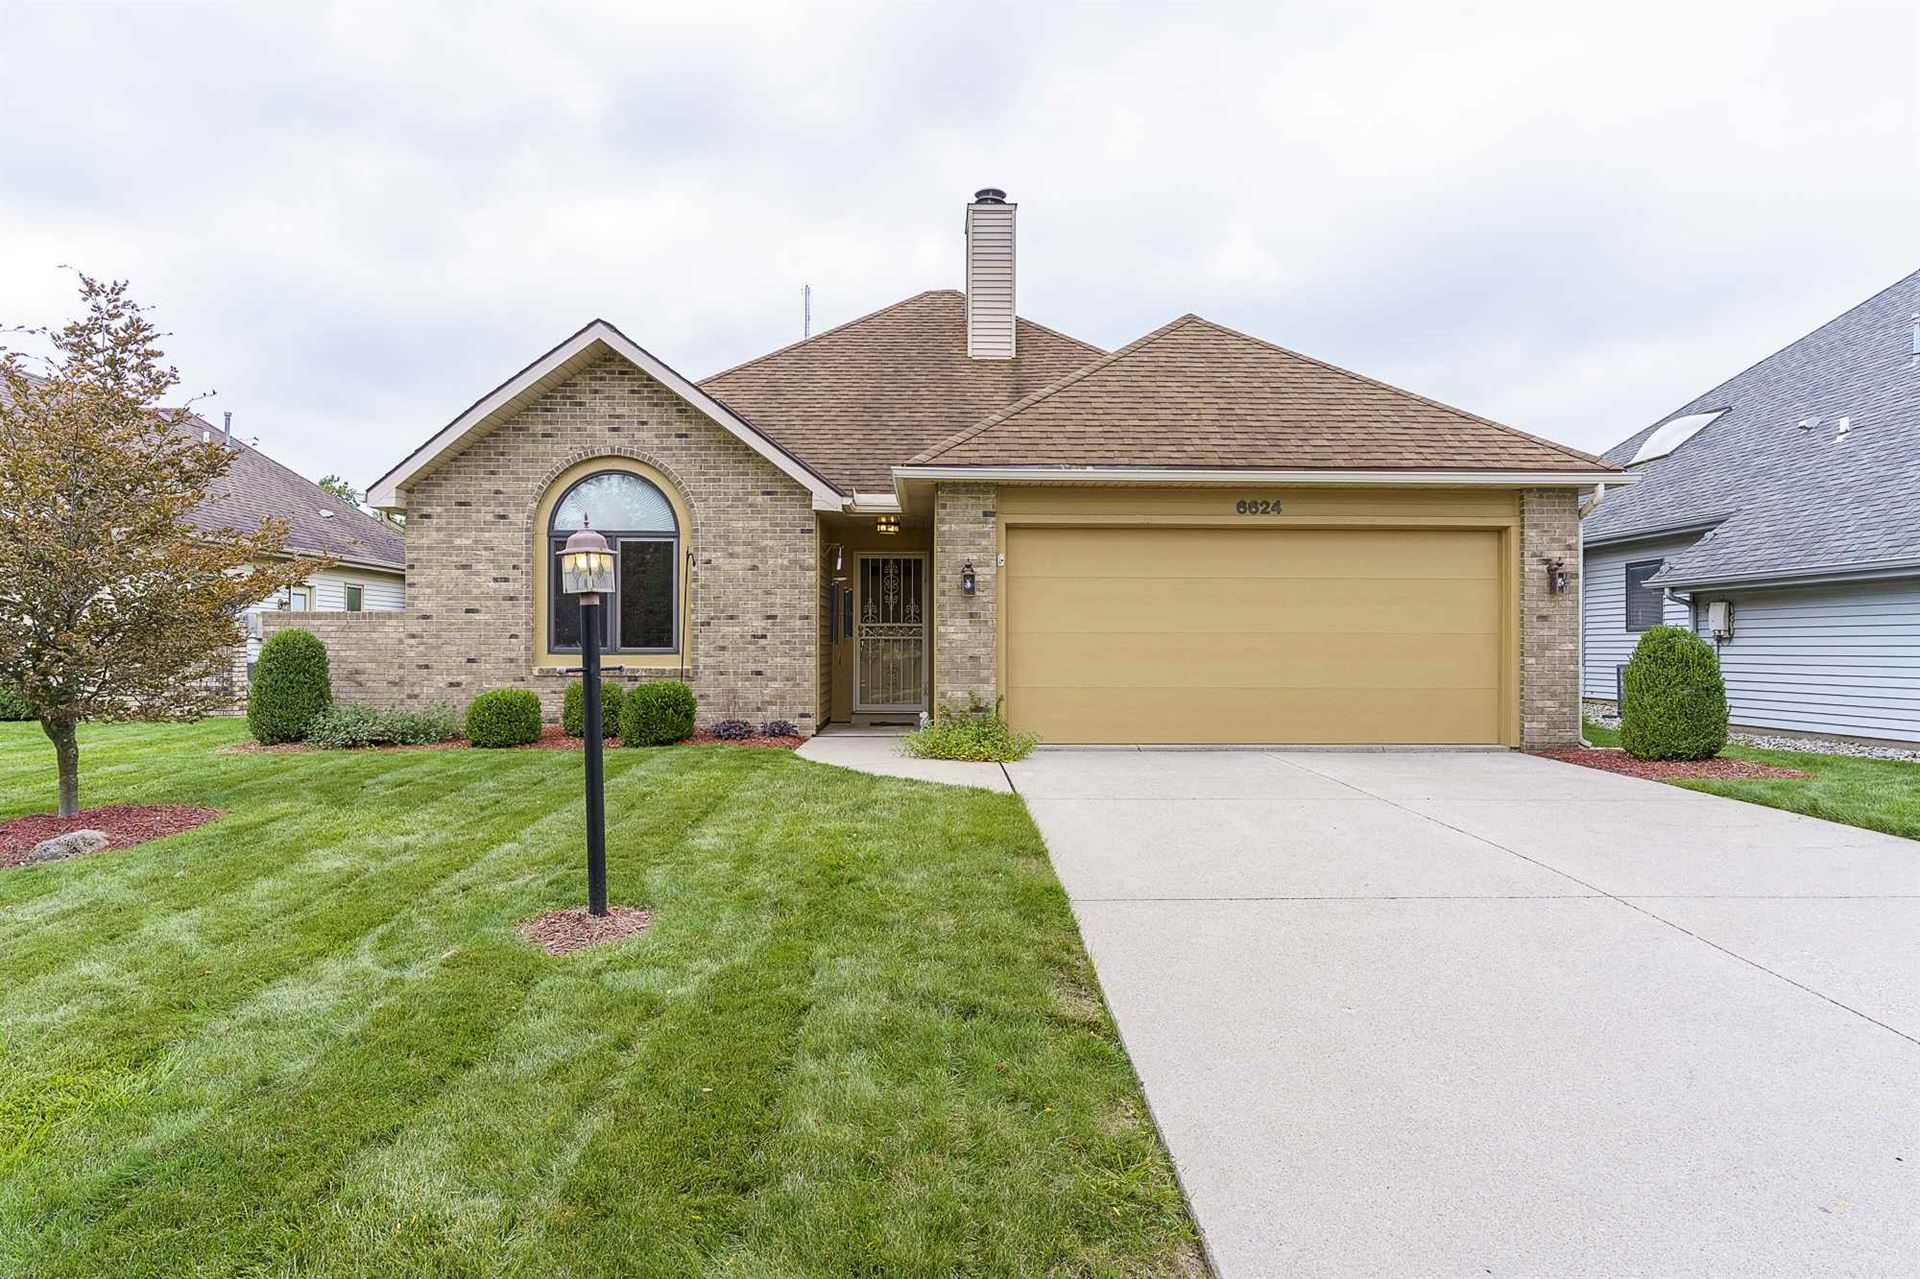 6624 PARSONS Court, Fort Wayne, IN 46815 - #: 202036745